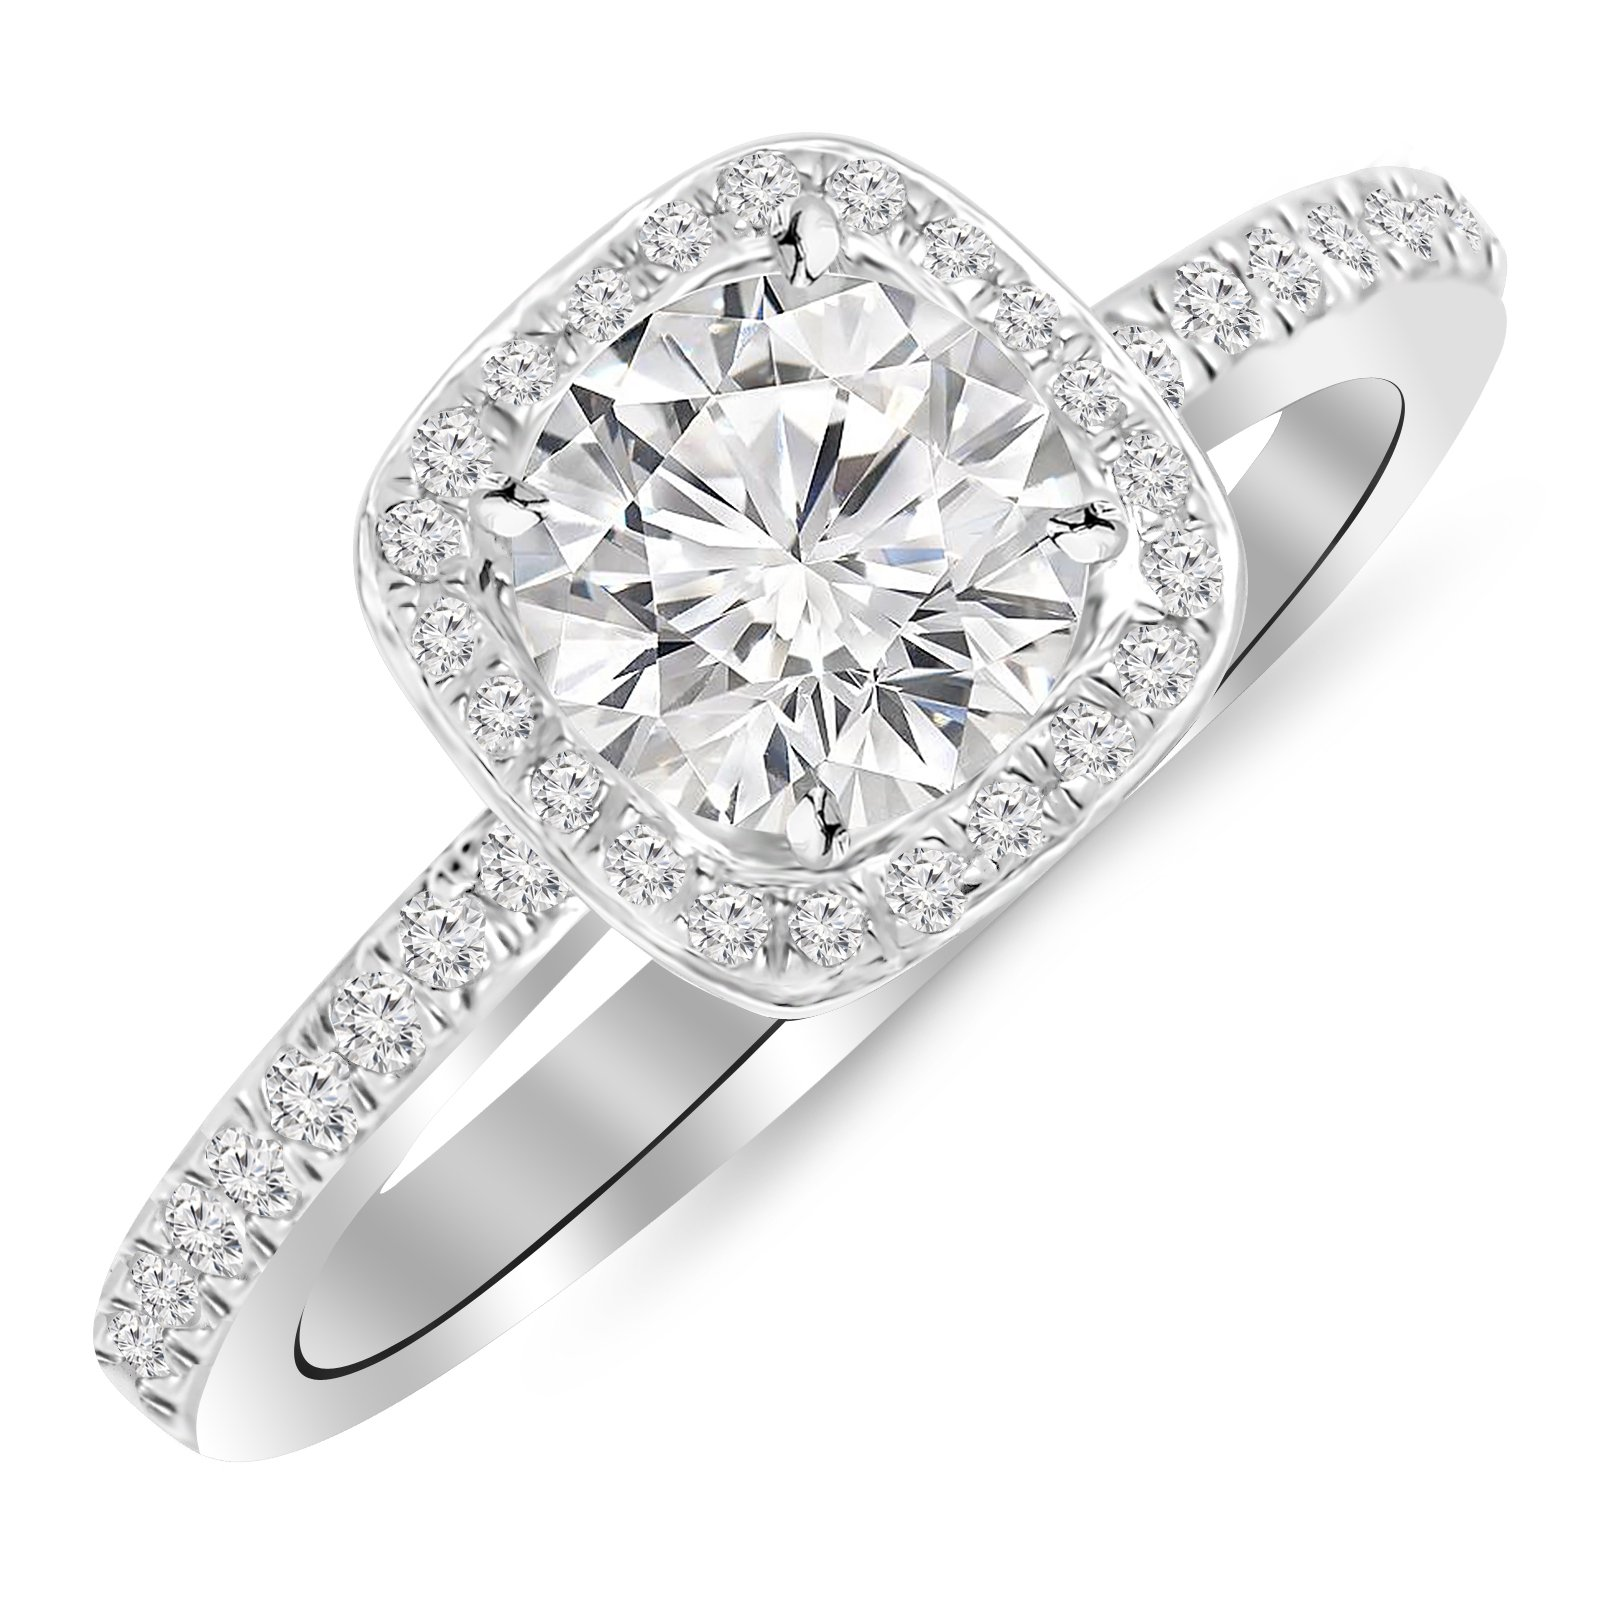 1 Carat Classic Halo Style Cushion Shape Diamond Engagement Ring 14K White Gold with a 0.75 Carat G-H I2 Round Brilliant Cut/Shape Center by Houston Diamond District